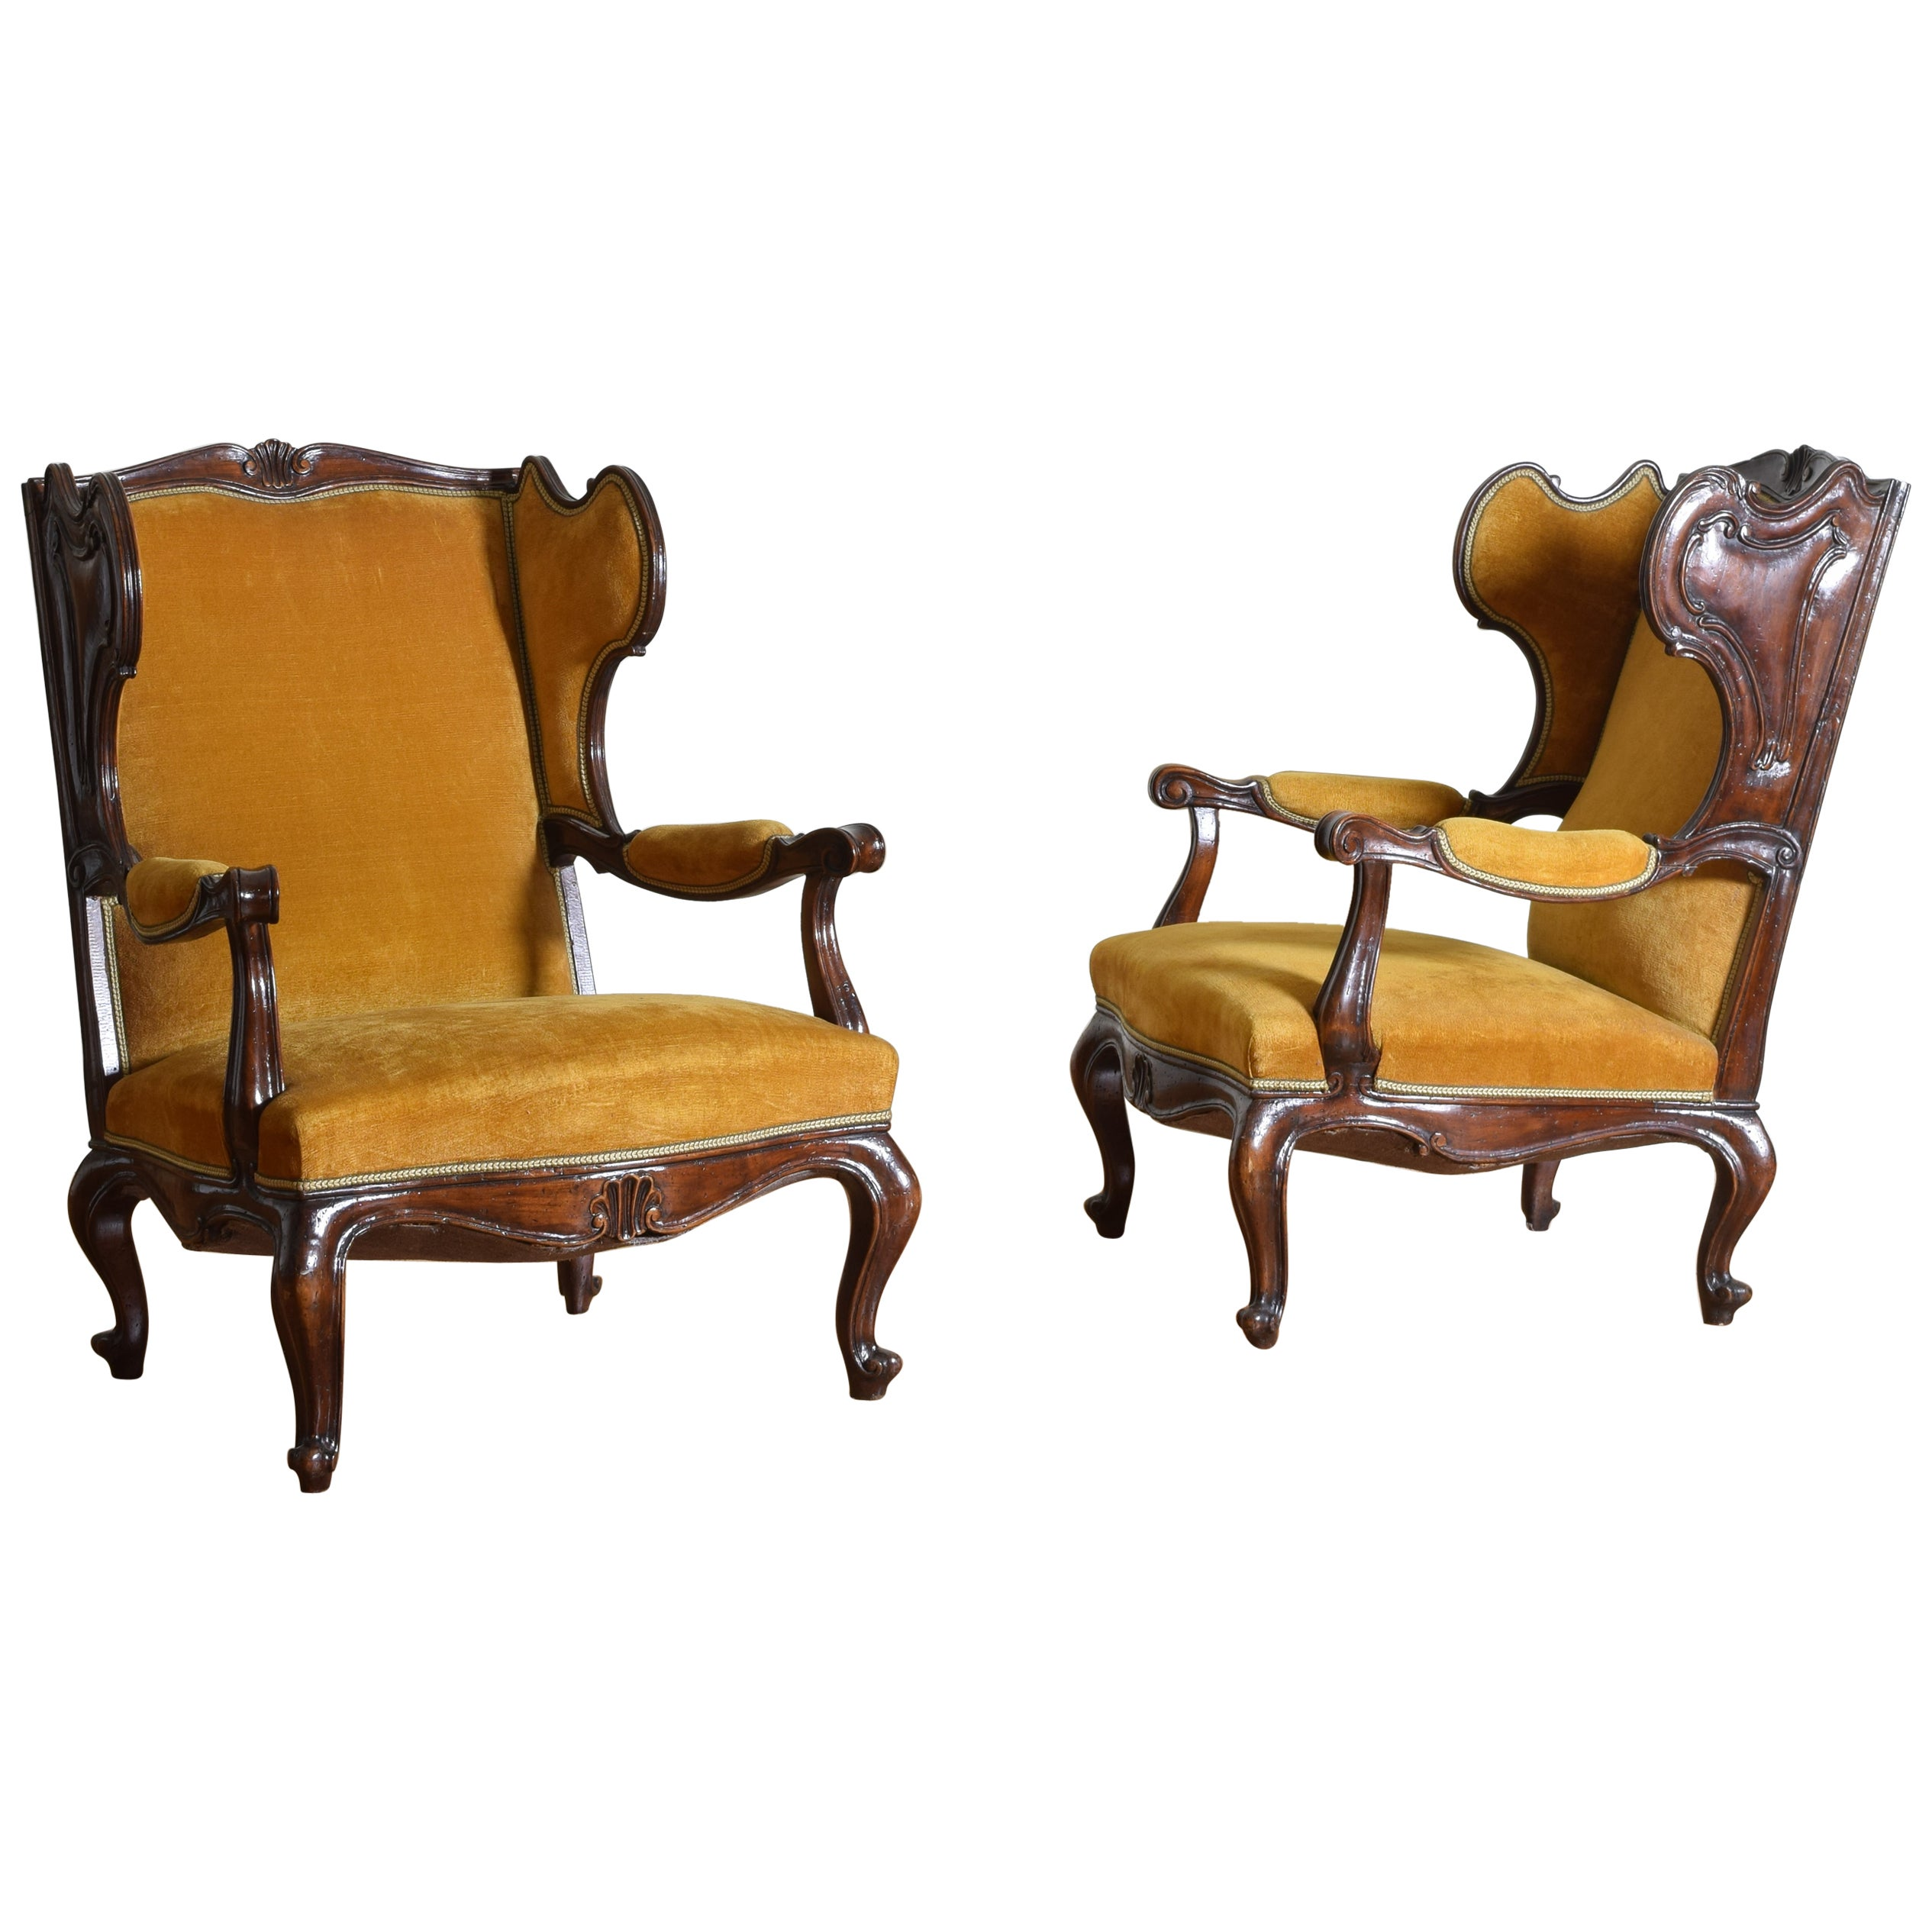 Pair of Italian Rococo Revival Style Walnut and Upholstered Wingchairs